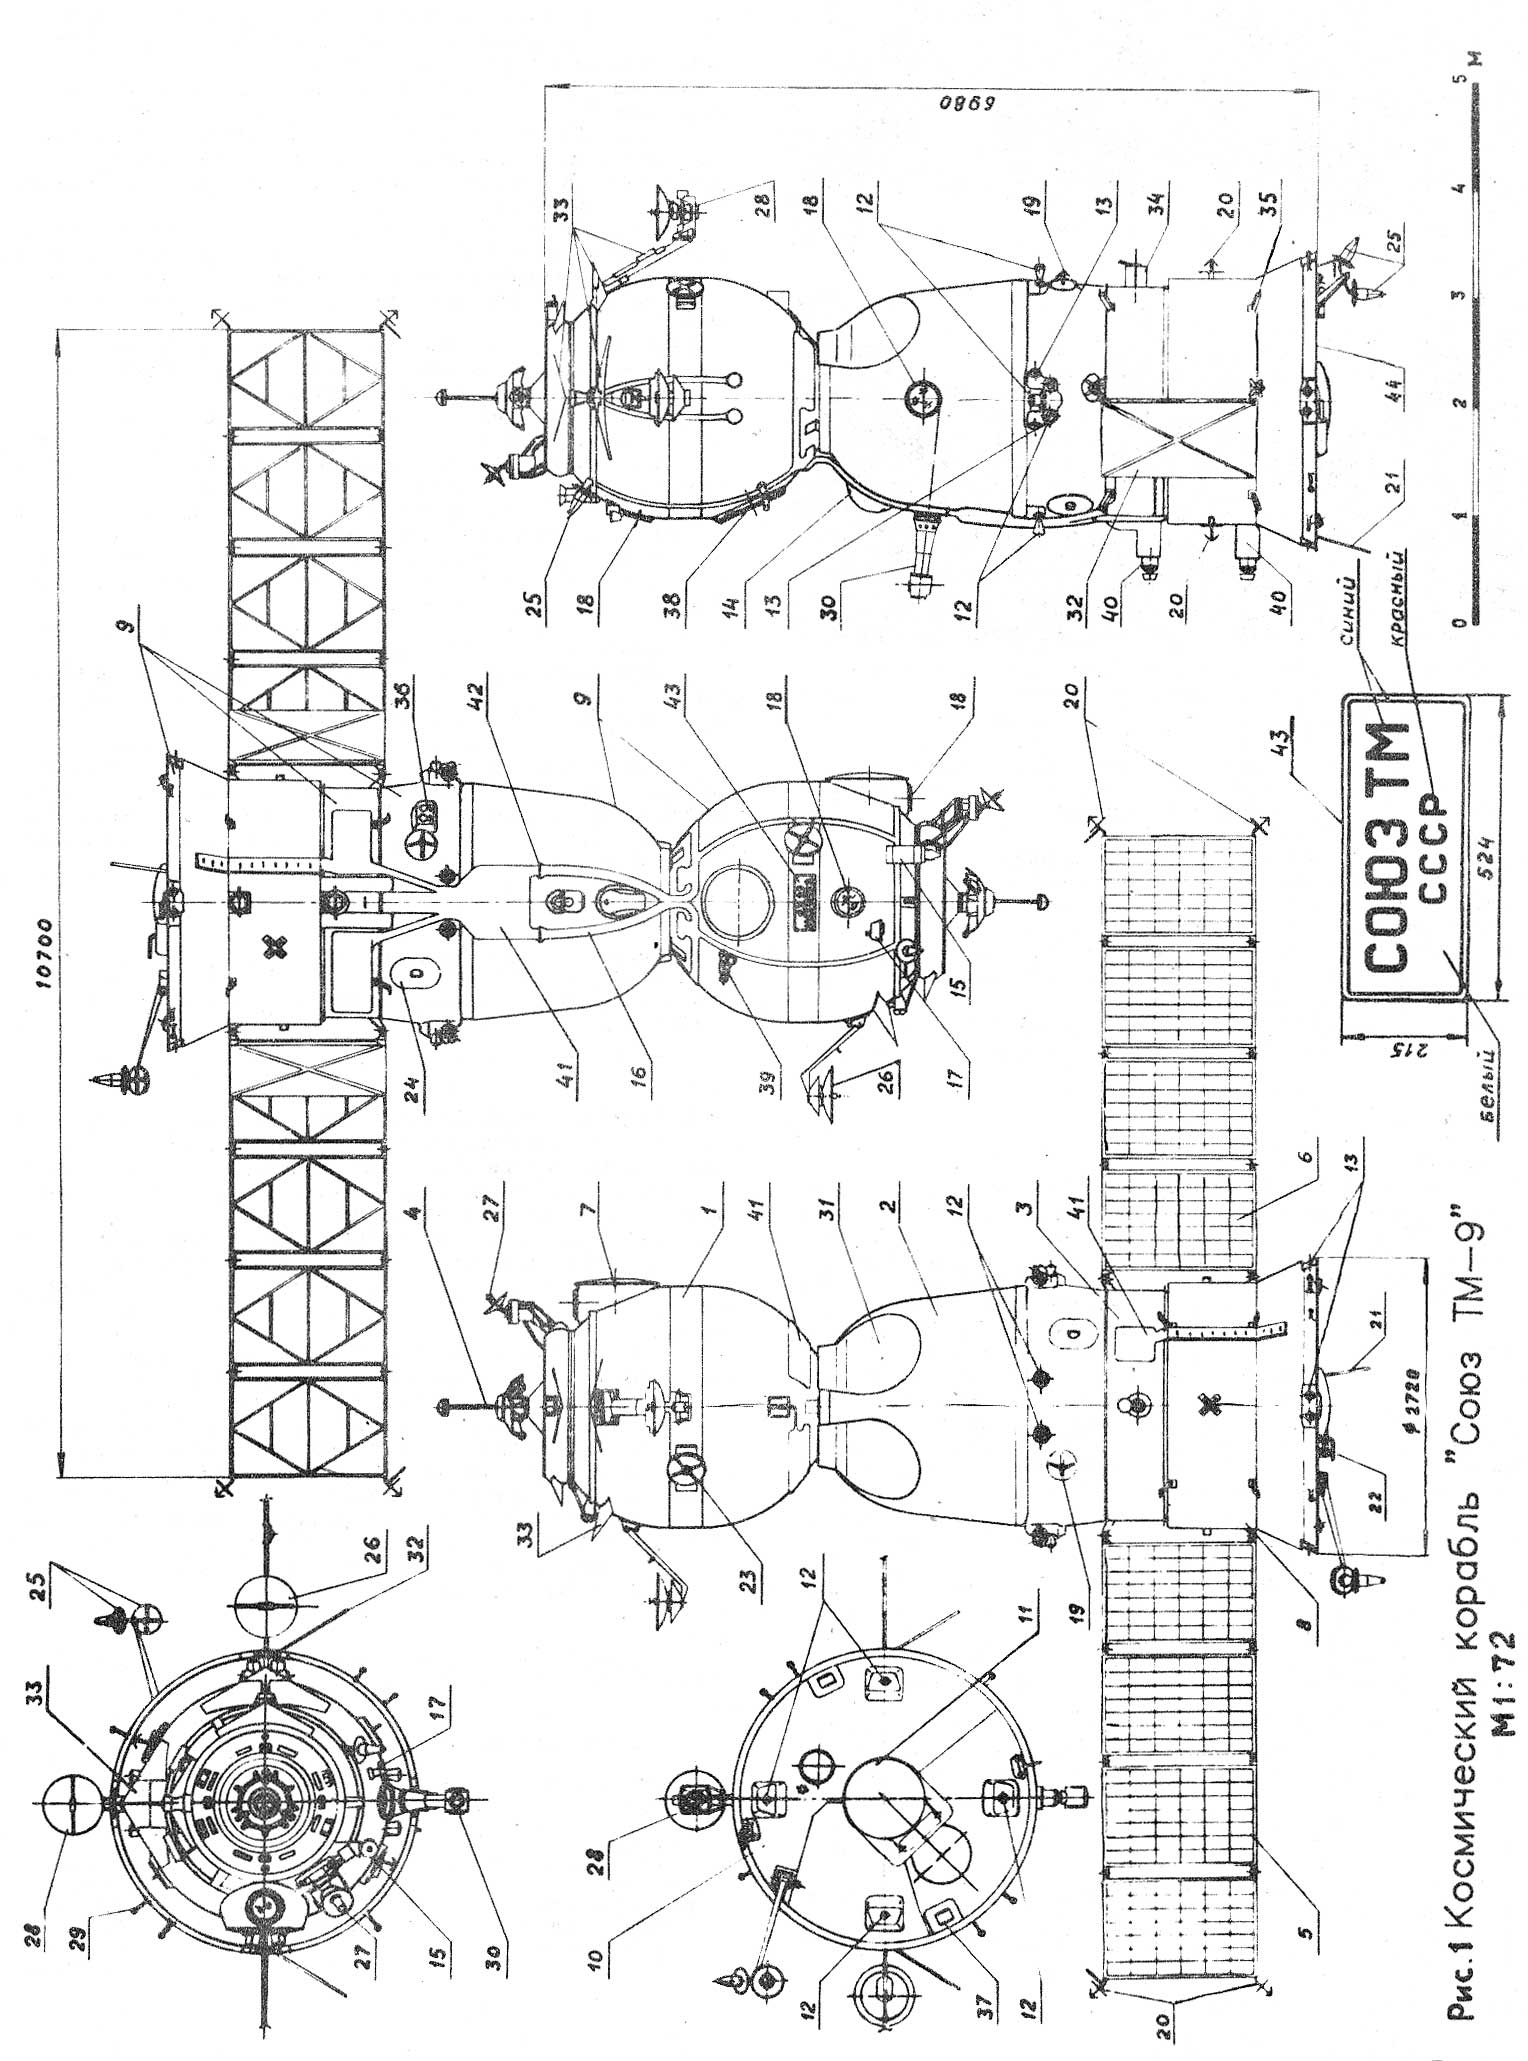 spacecraft drawing - photo #32